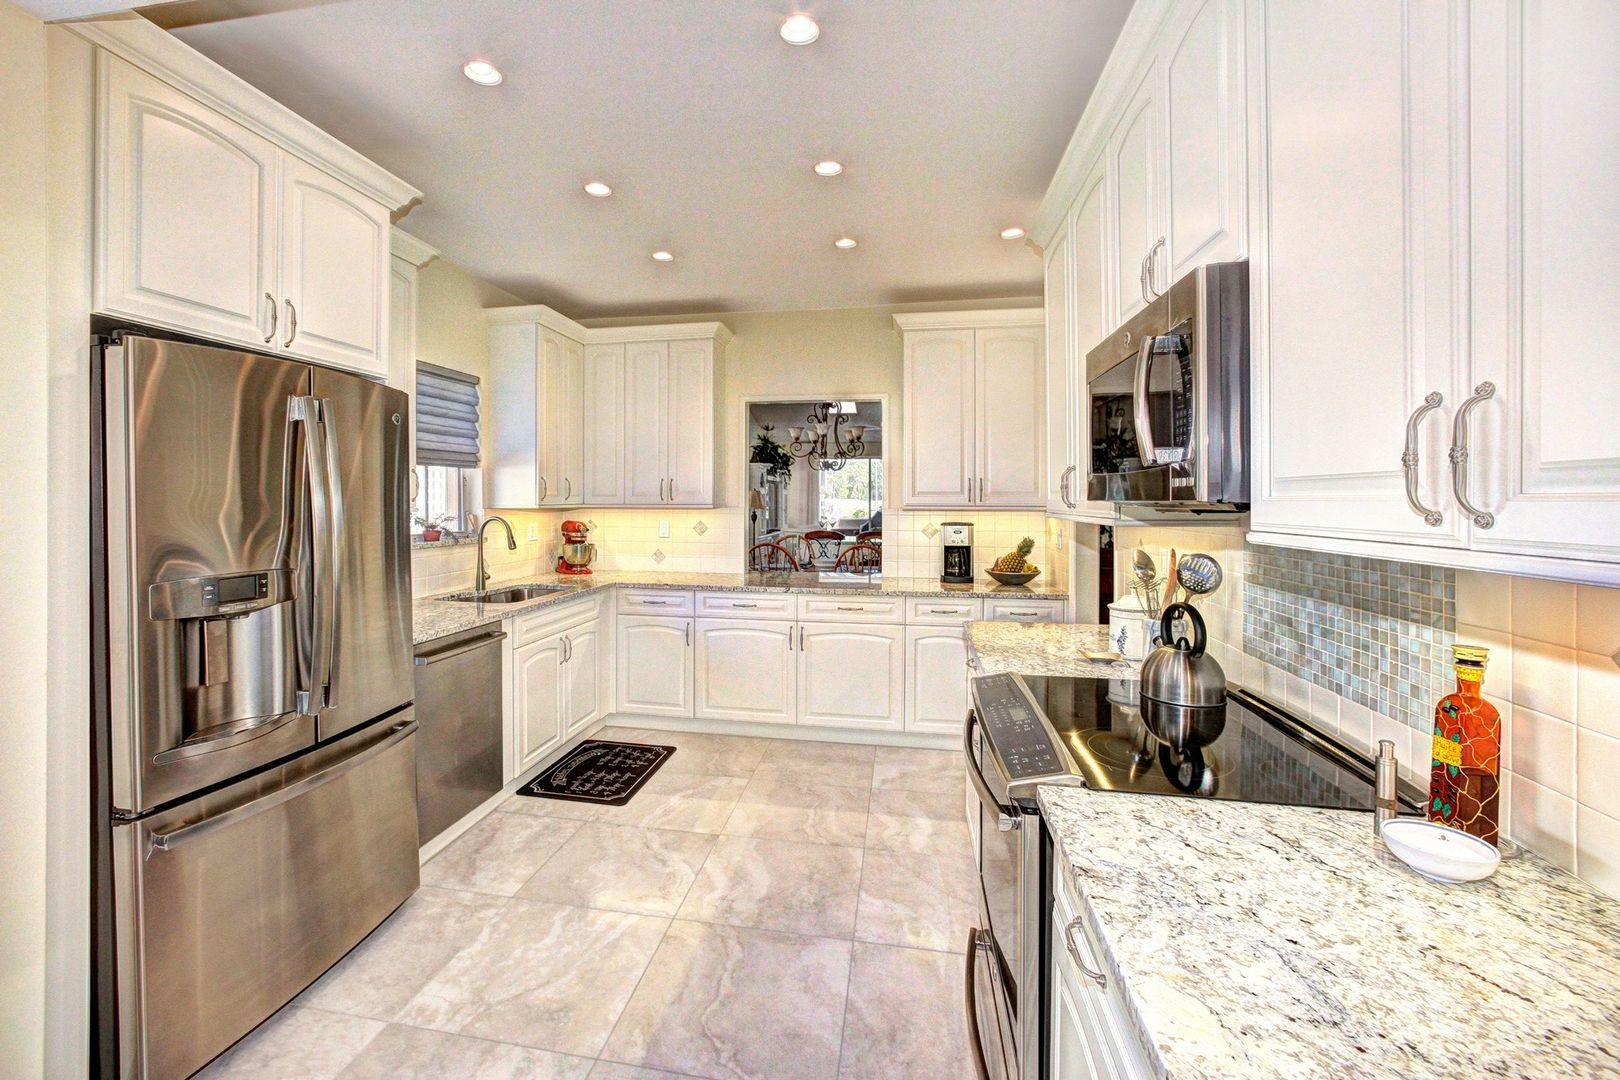 Remodeling Kitchens And Bathrooms - Alley Design To Build ...